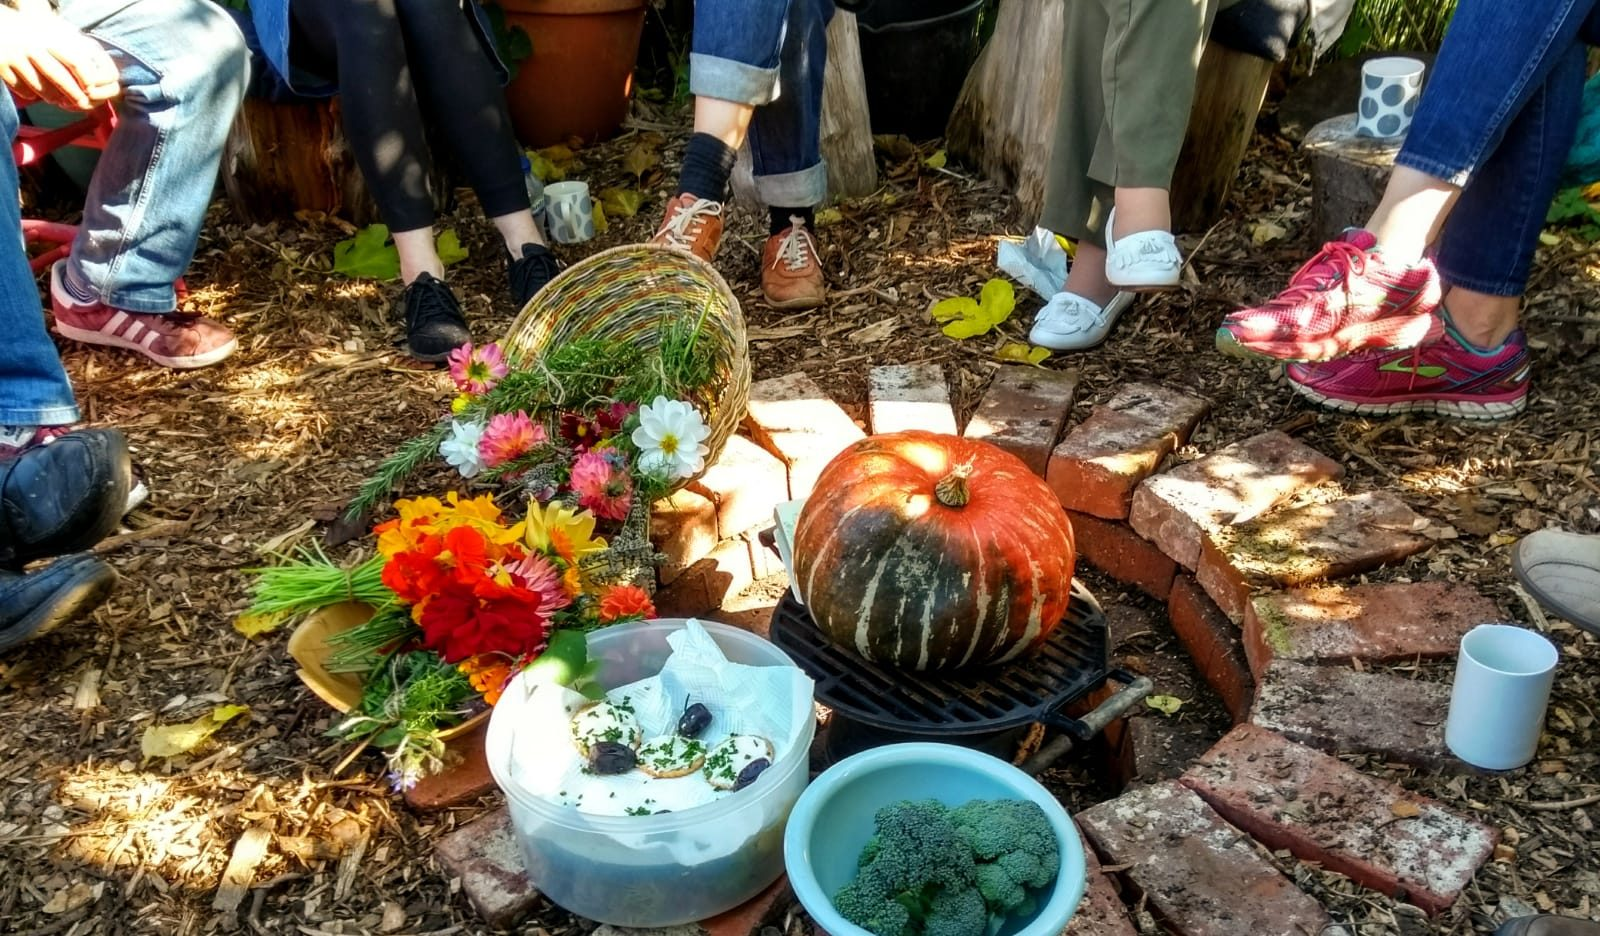 feet around a fire pit filled with harvest